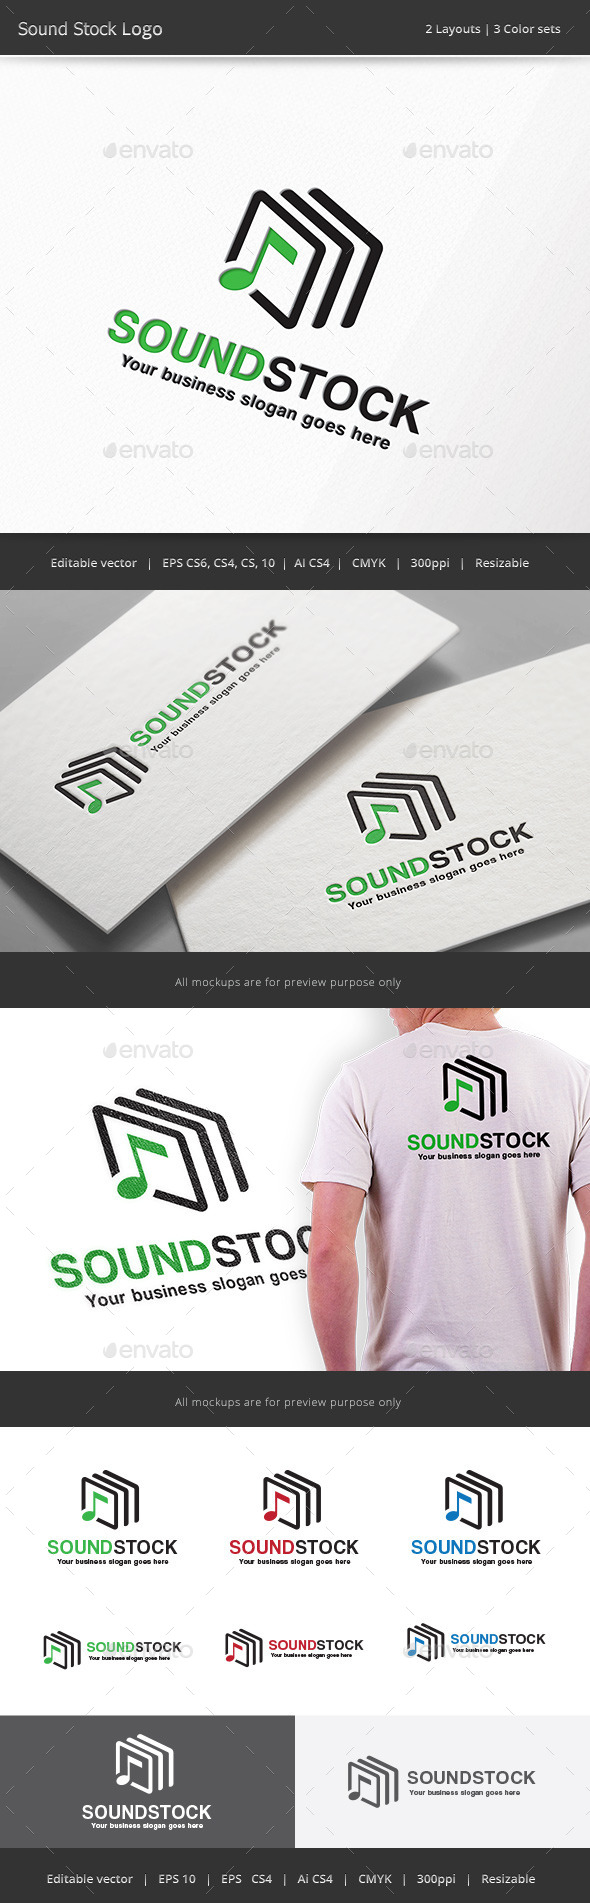 GraphicRiver Sound Stock Logo 11829849